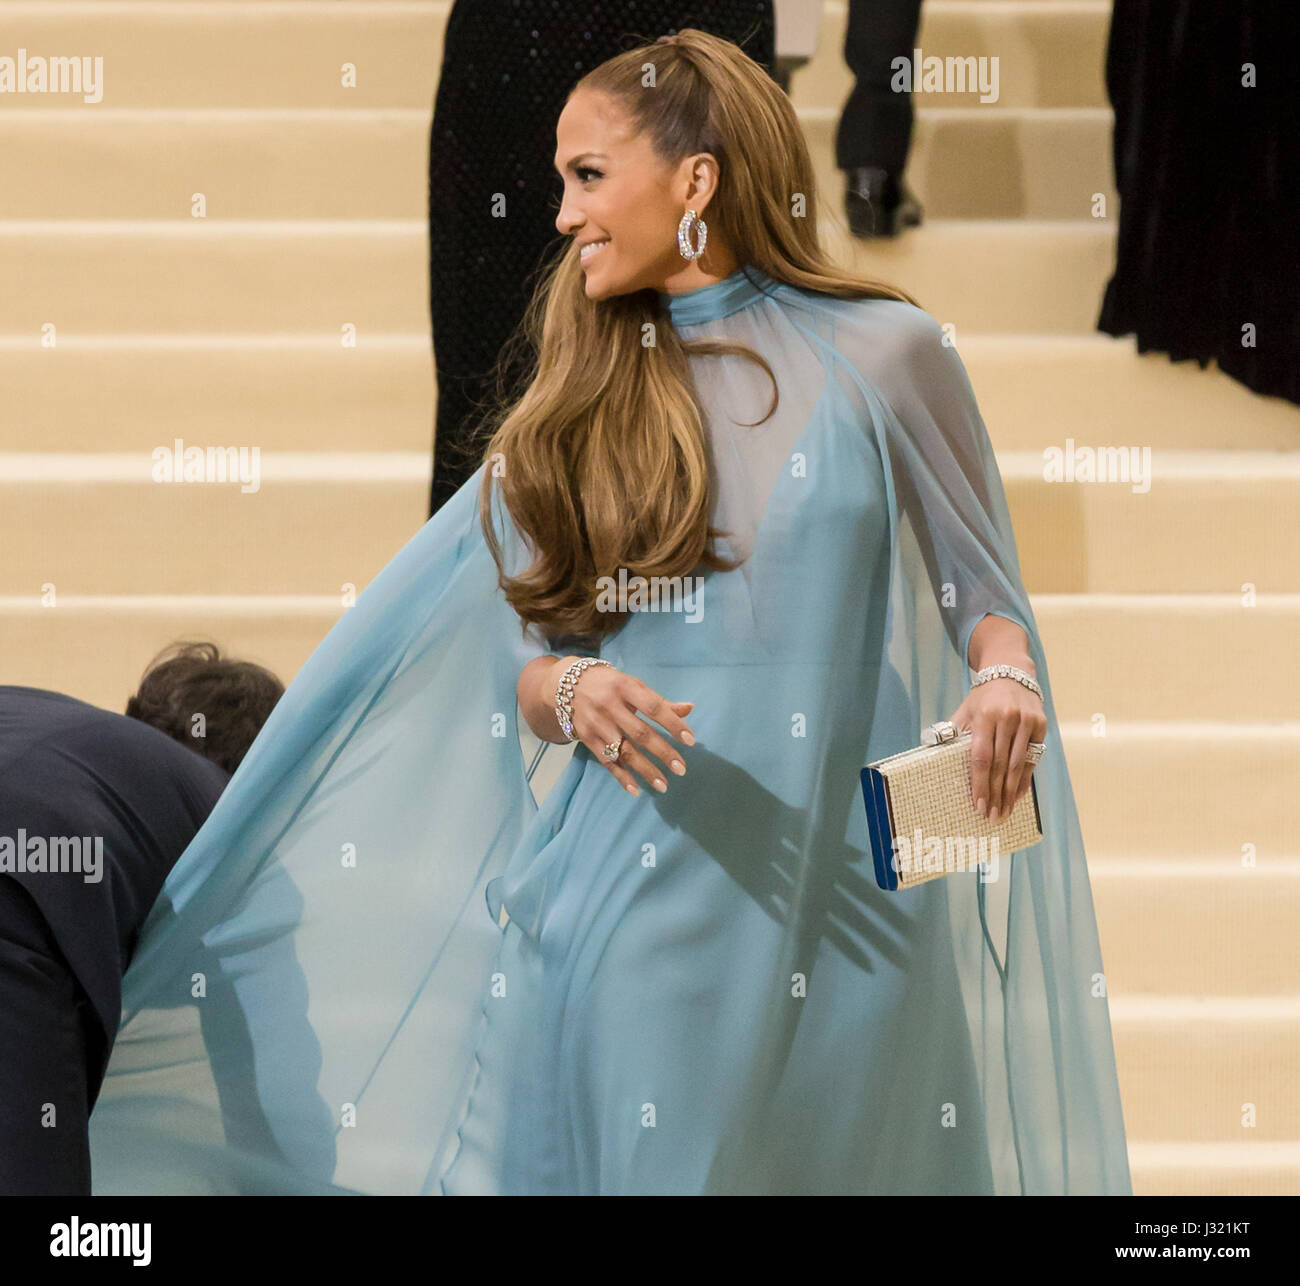 New York, USA. 1st May, 2017. Jennifer Lopez attends the 'Rei Kawakubo/Comme des Garcons: Art Of The In-Between' - Stock Image